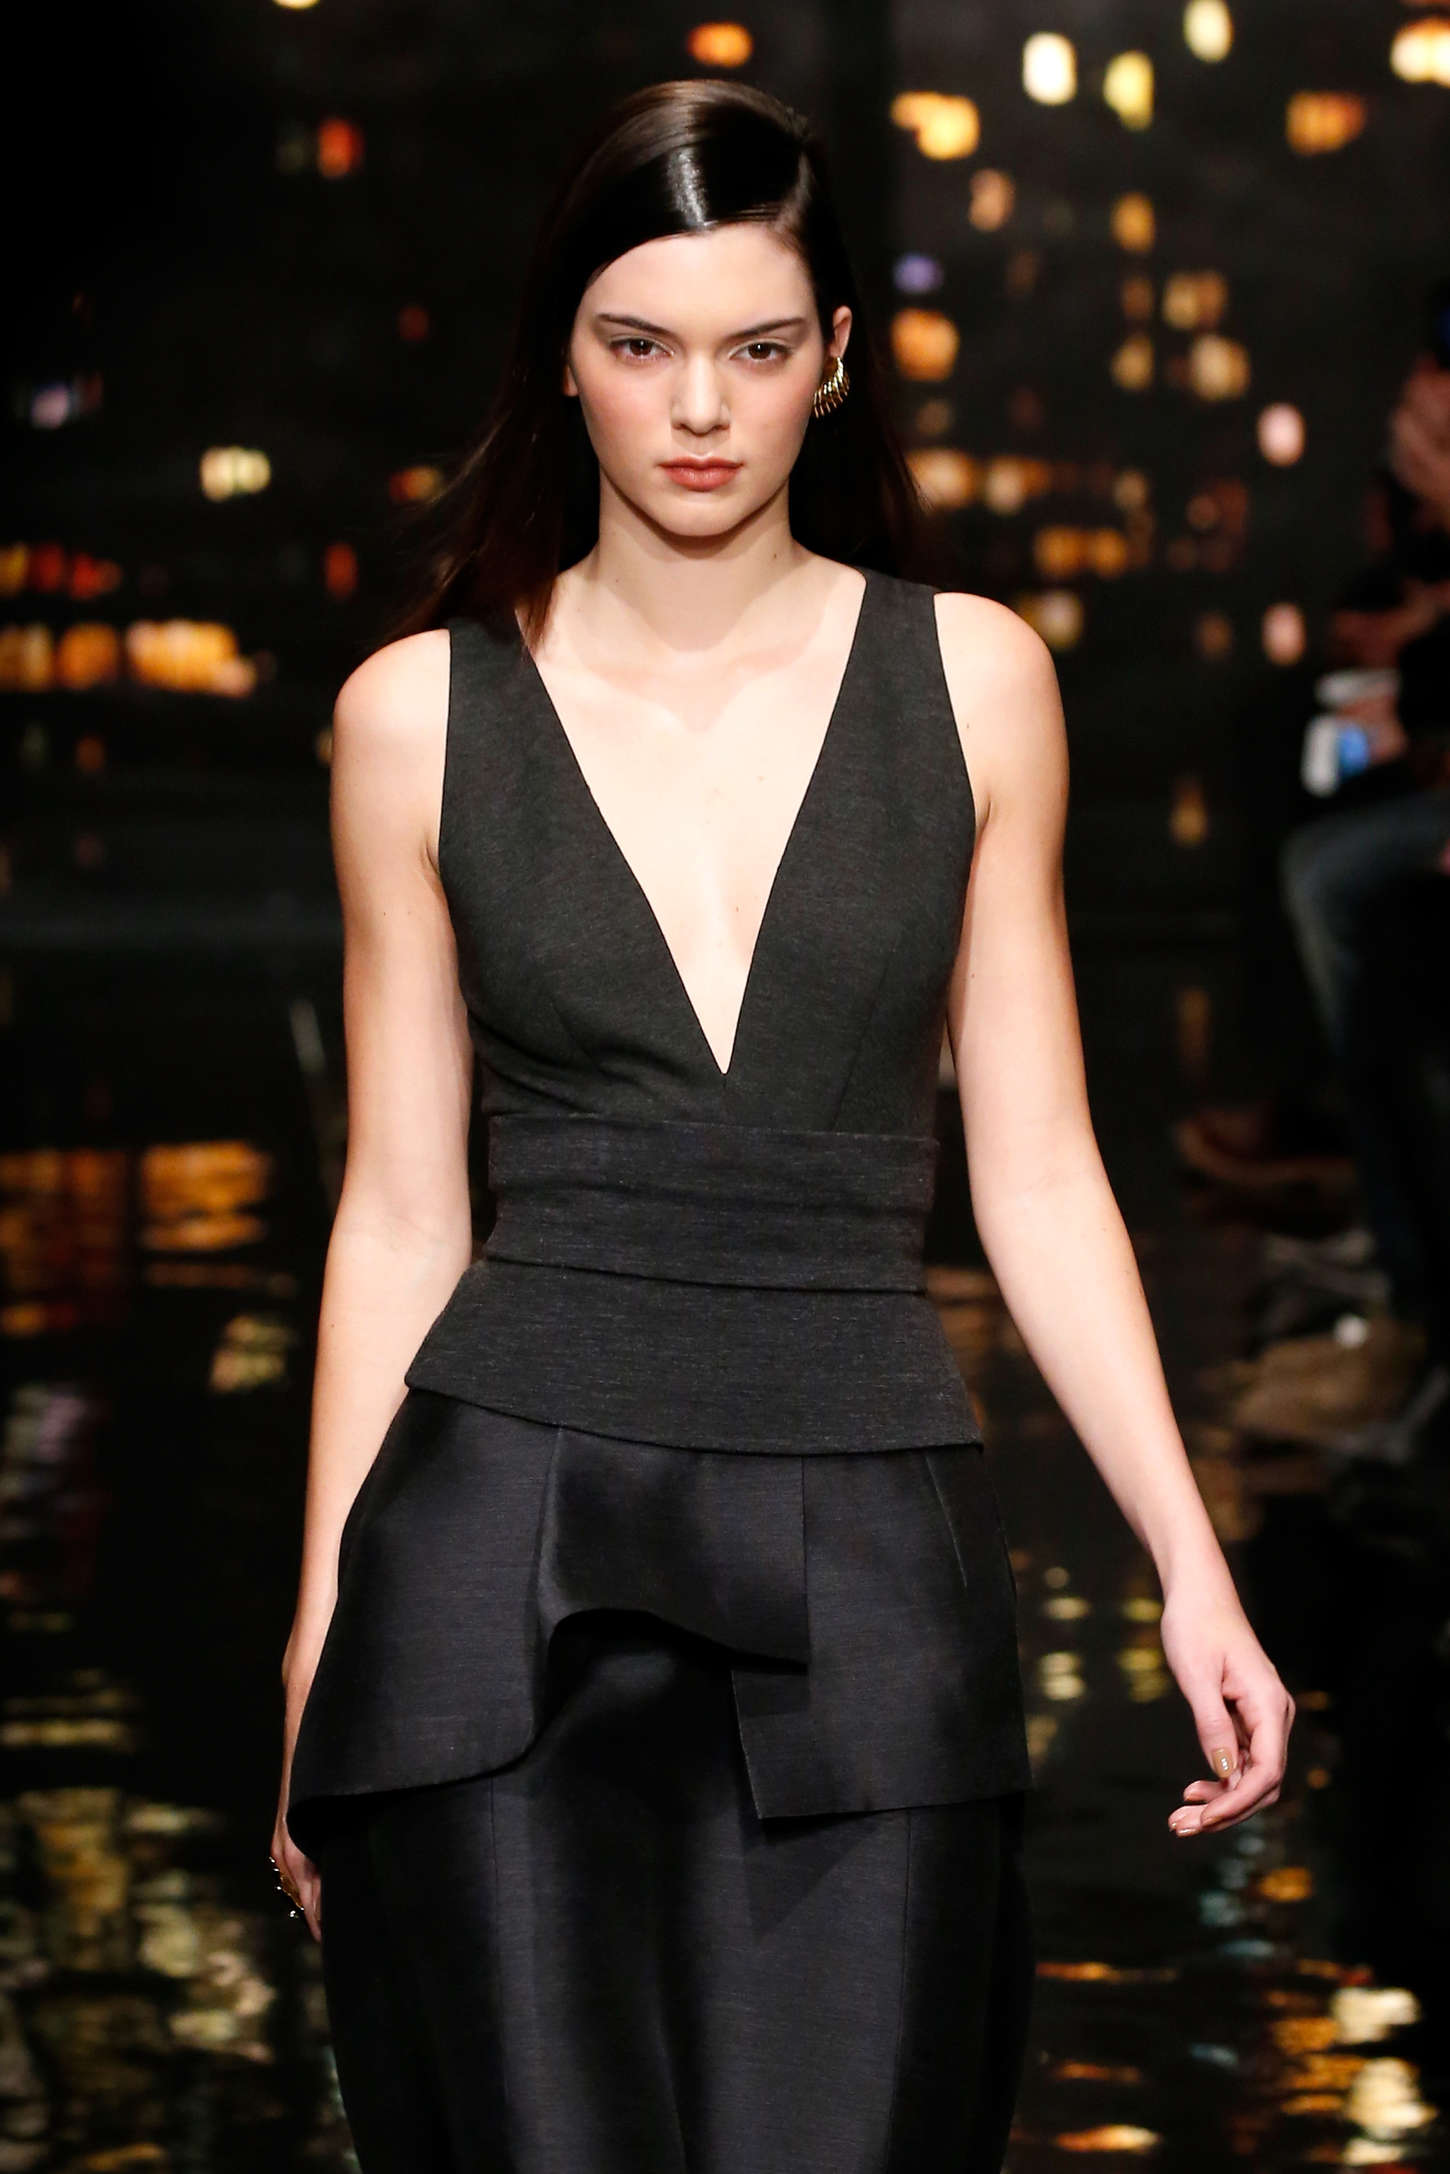 kendall jenner donna karan fashion show 2015 in nyc. Black Bedroom Furniture Sets. Home Design Ideas